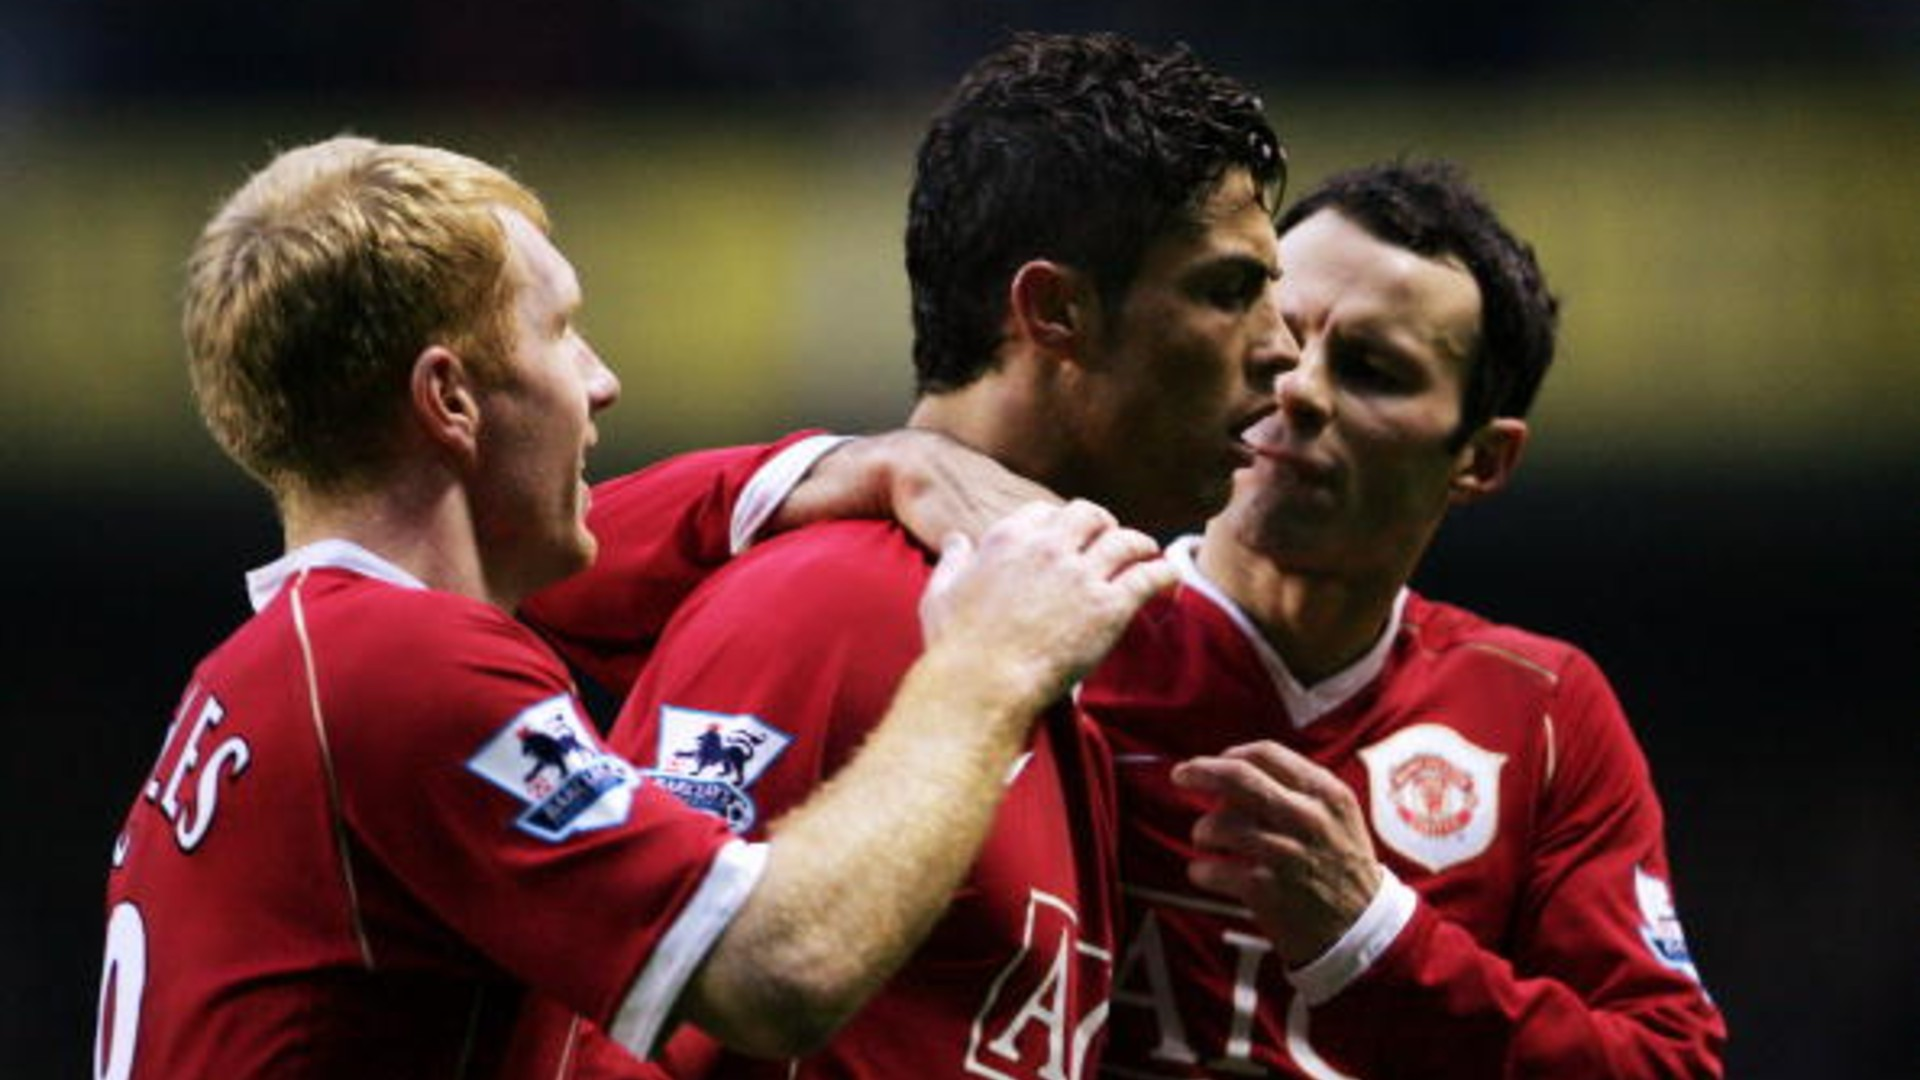 Cristiano Ronaldo's debut for Manchester United - Who were his teammates and where are they now?